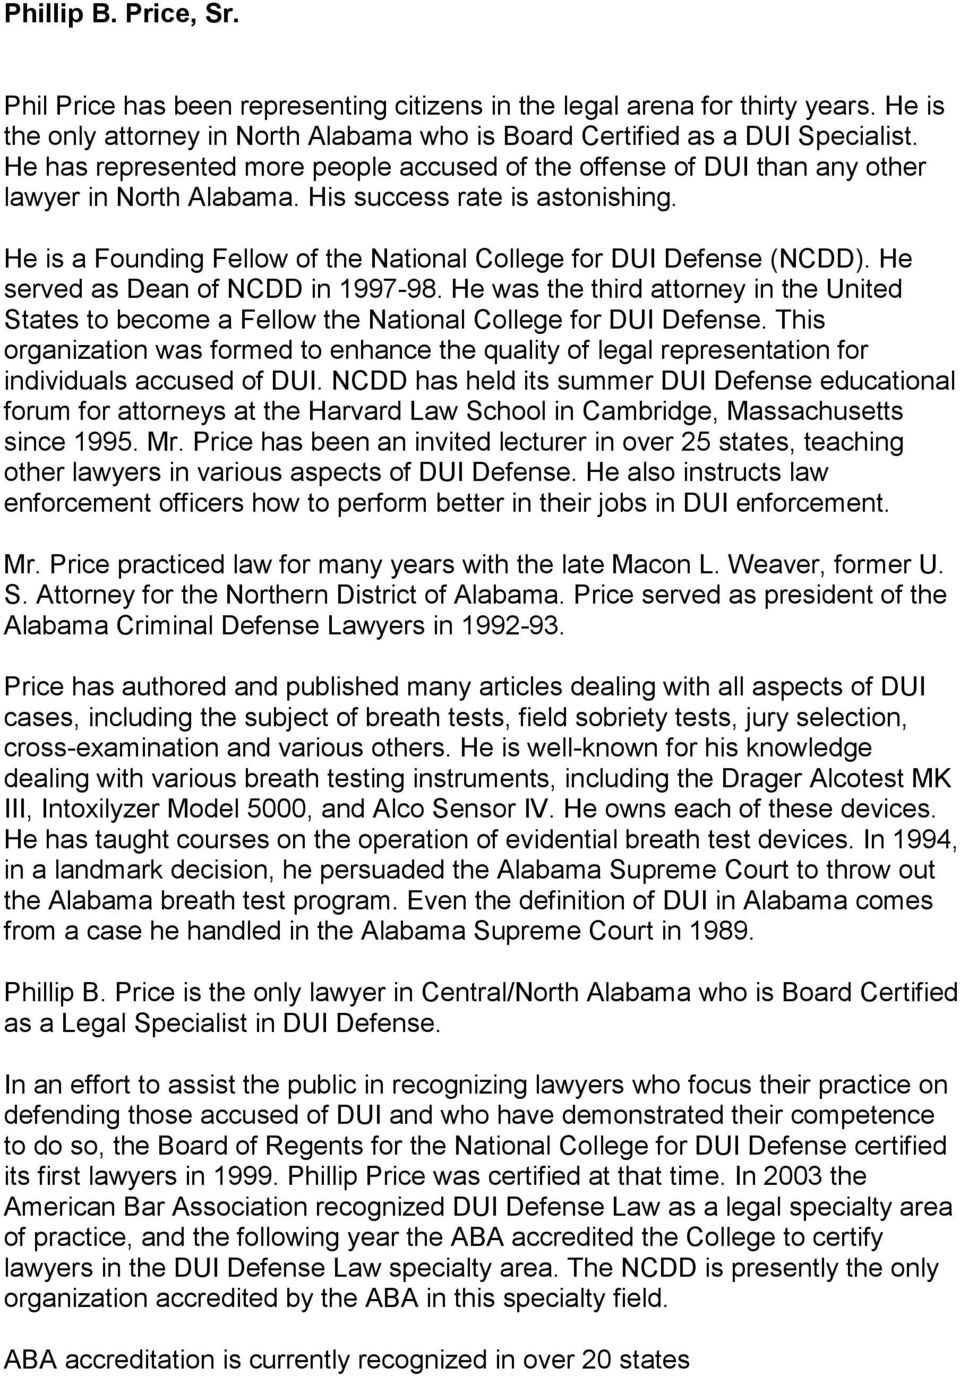 He is a Founding Fellow of the National College for DUI Defense (NCDD). He served as Dean of NCDD in 1997-98.